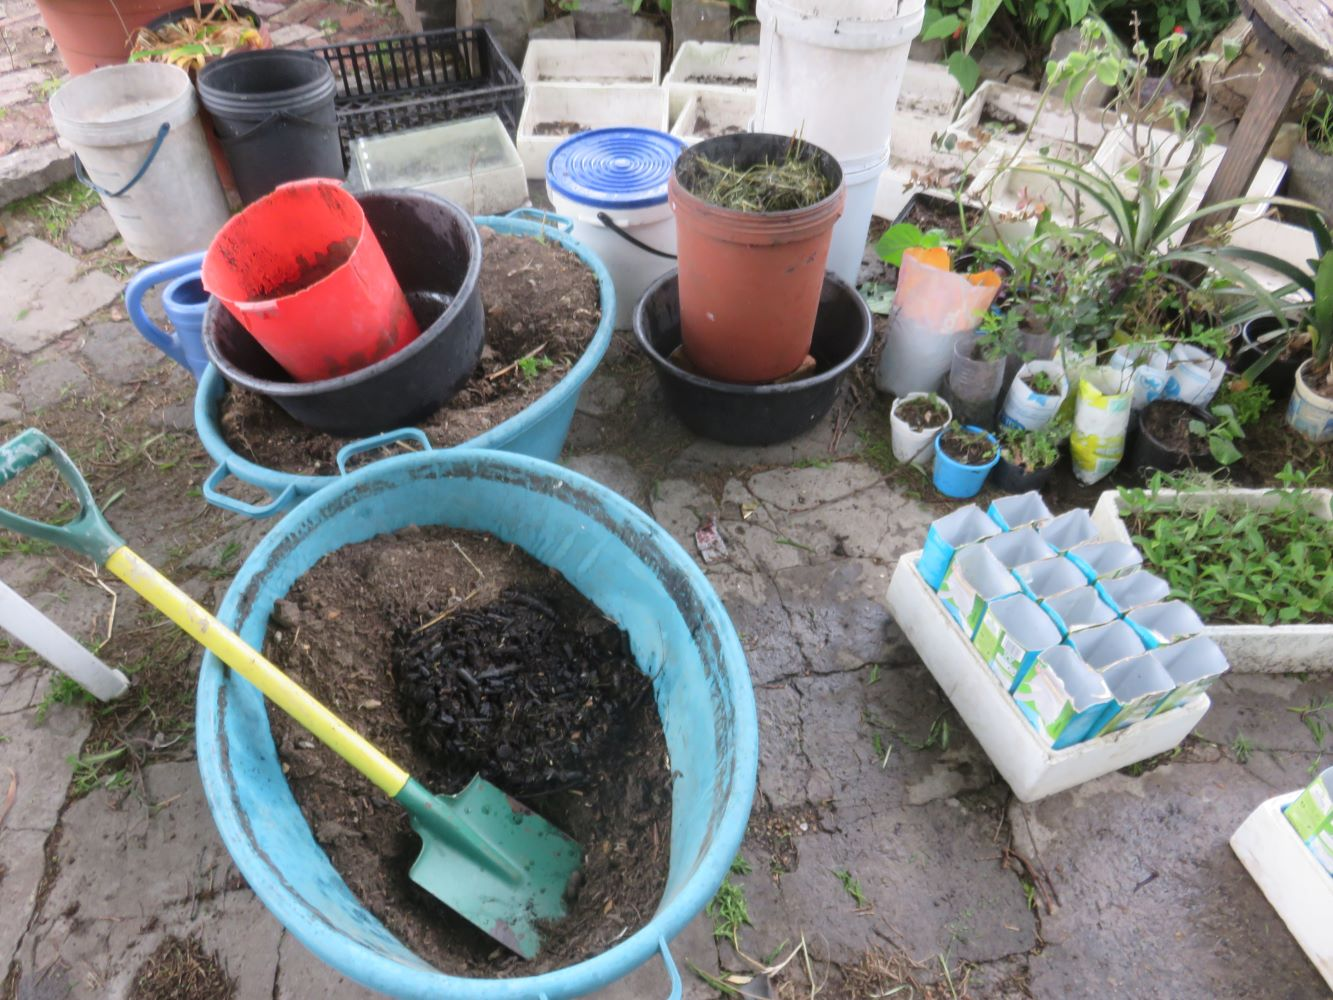 Potting soil, additives, planters and trays.